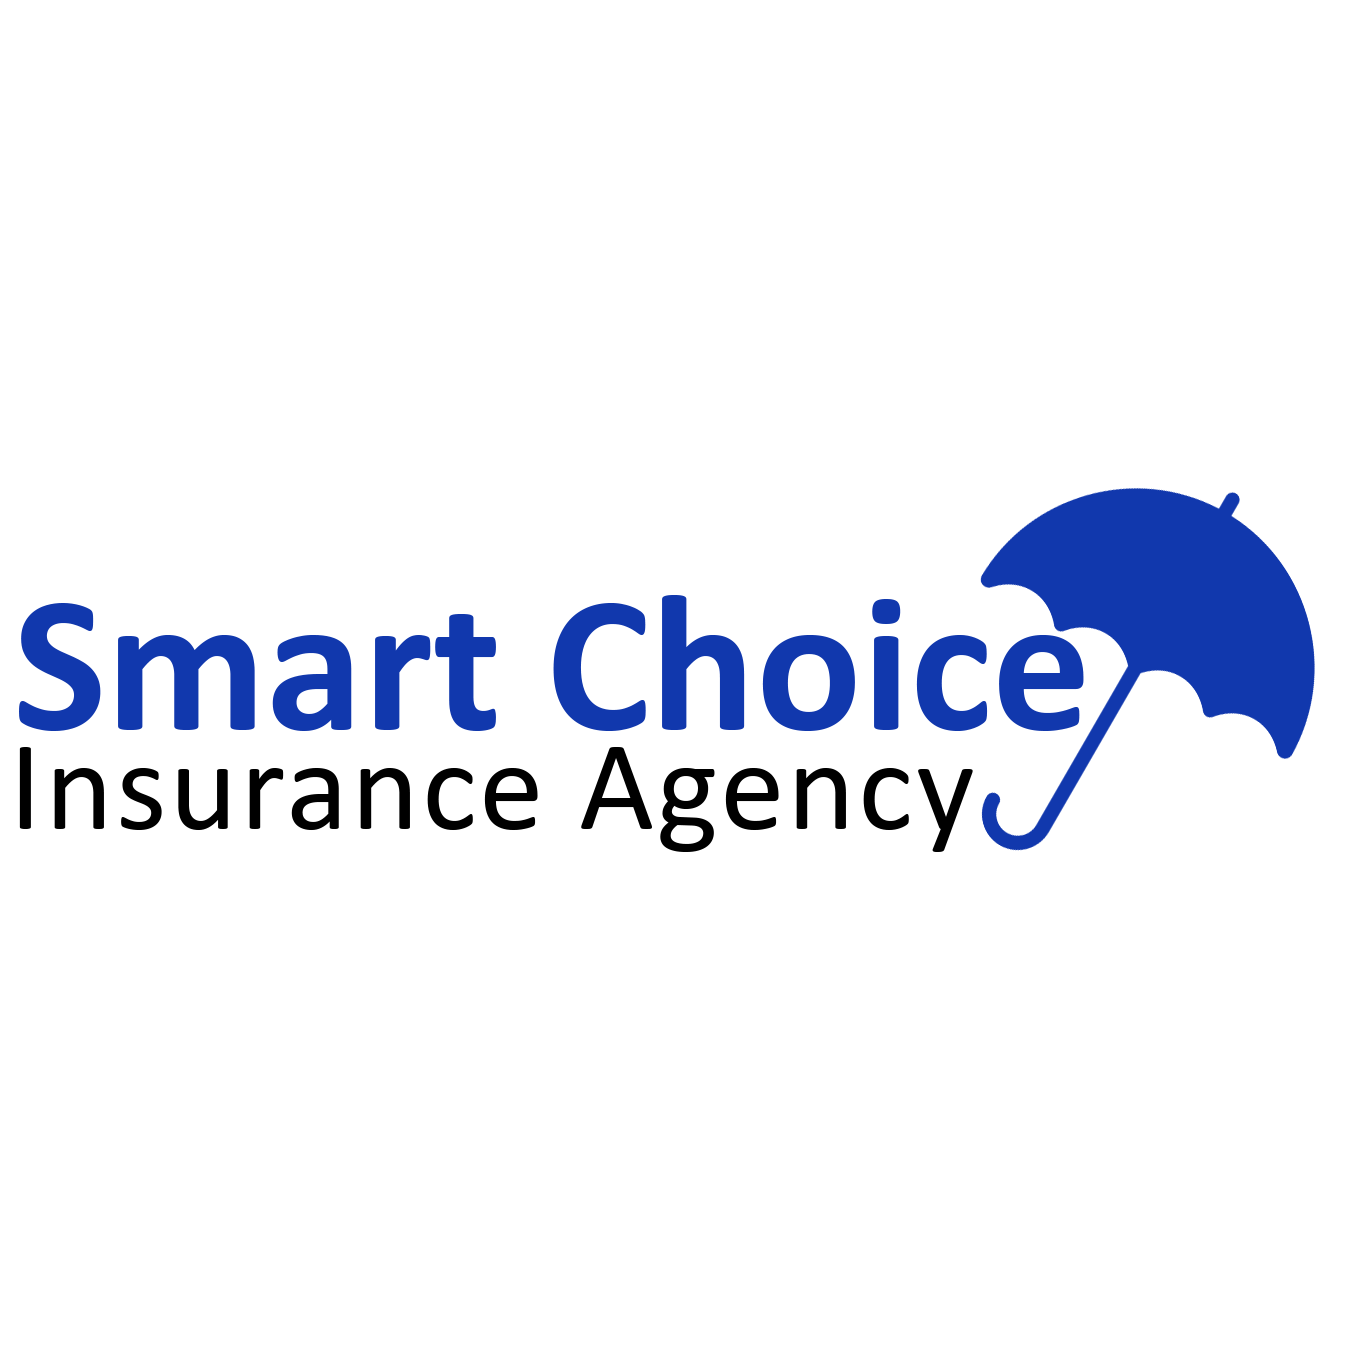 Smart Choice Insurance Agency